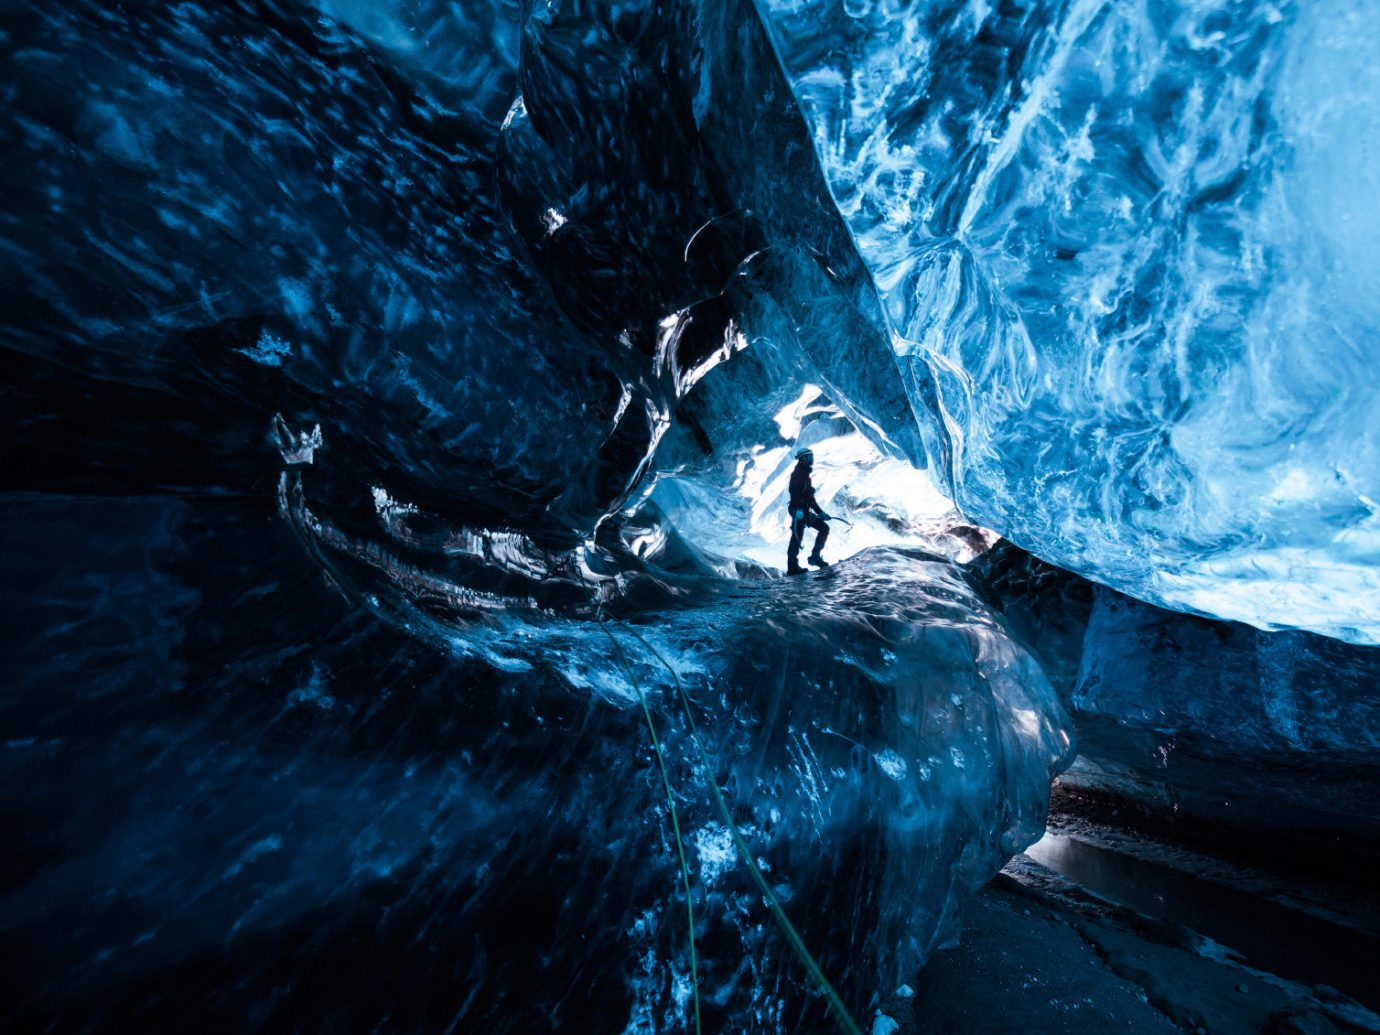 Iceland Outdoors + Adventure Road Trips blue ice cave landform geographical feature cave ice extreme sport screenshot glacial landform computer wallpaper